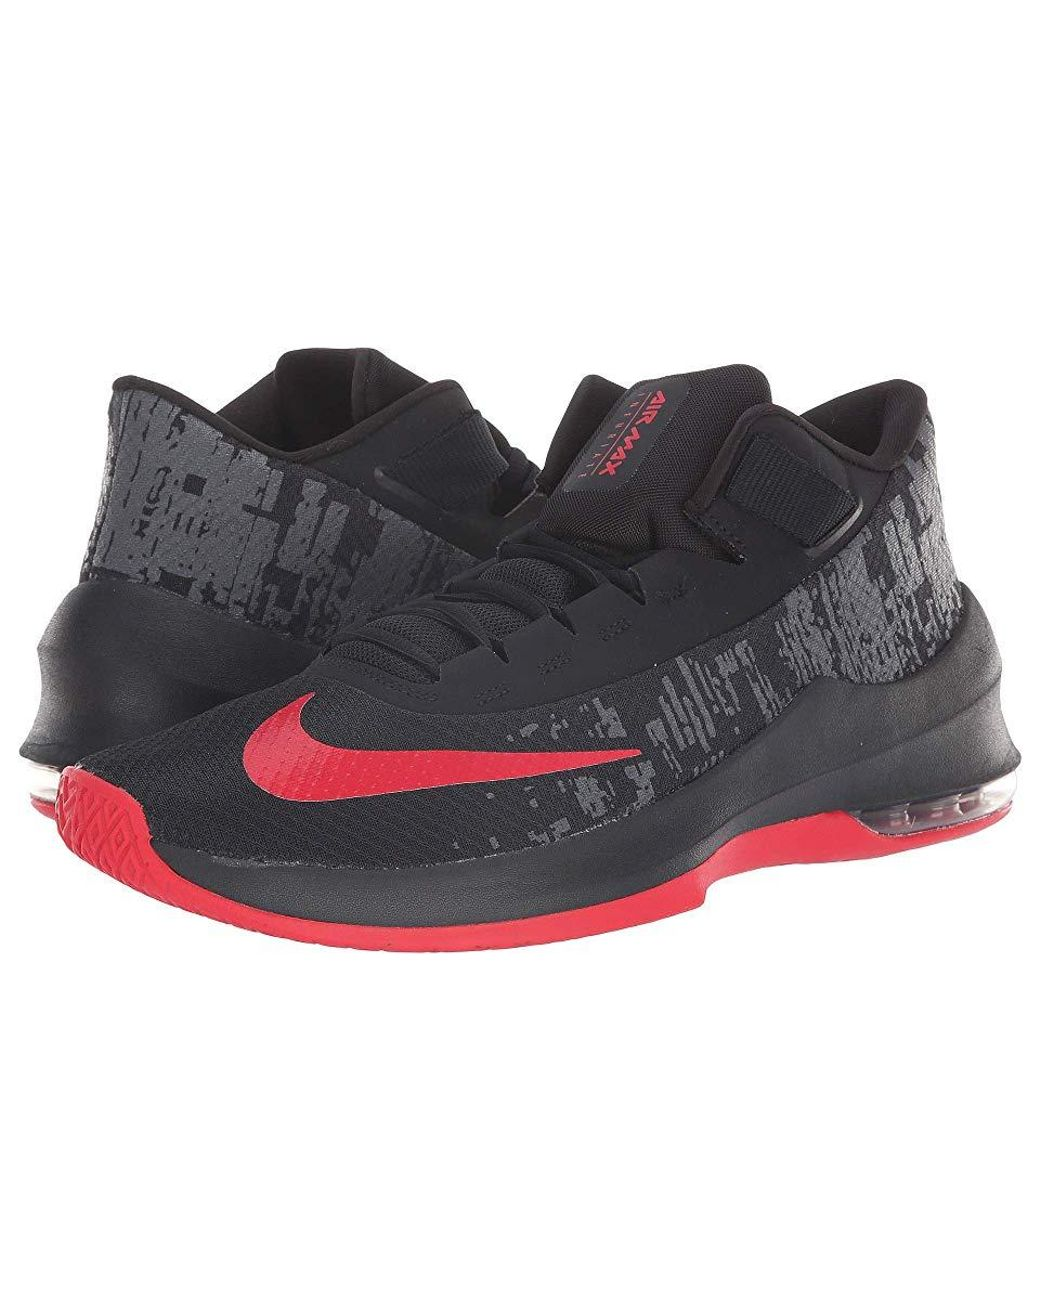 4b317e392925e Nike Air Max Infuriate 2 Mid (black/university Red/anthracite) Basketball  Shoes in Black for Men - Save 30% - Lyst